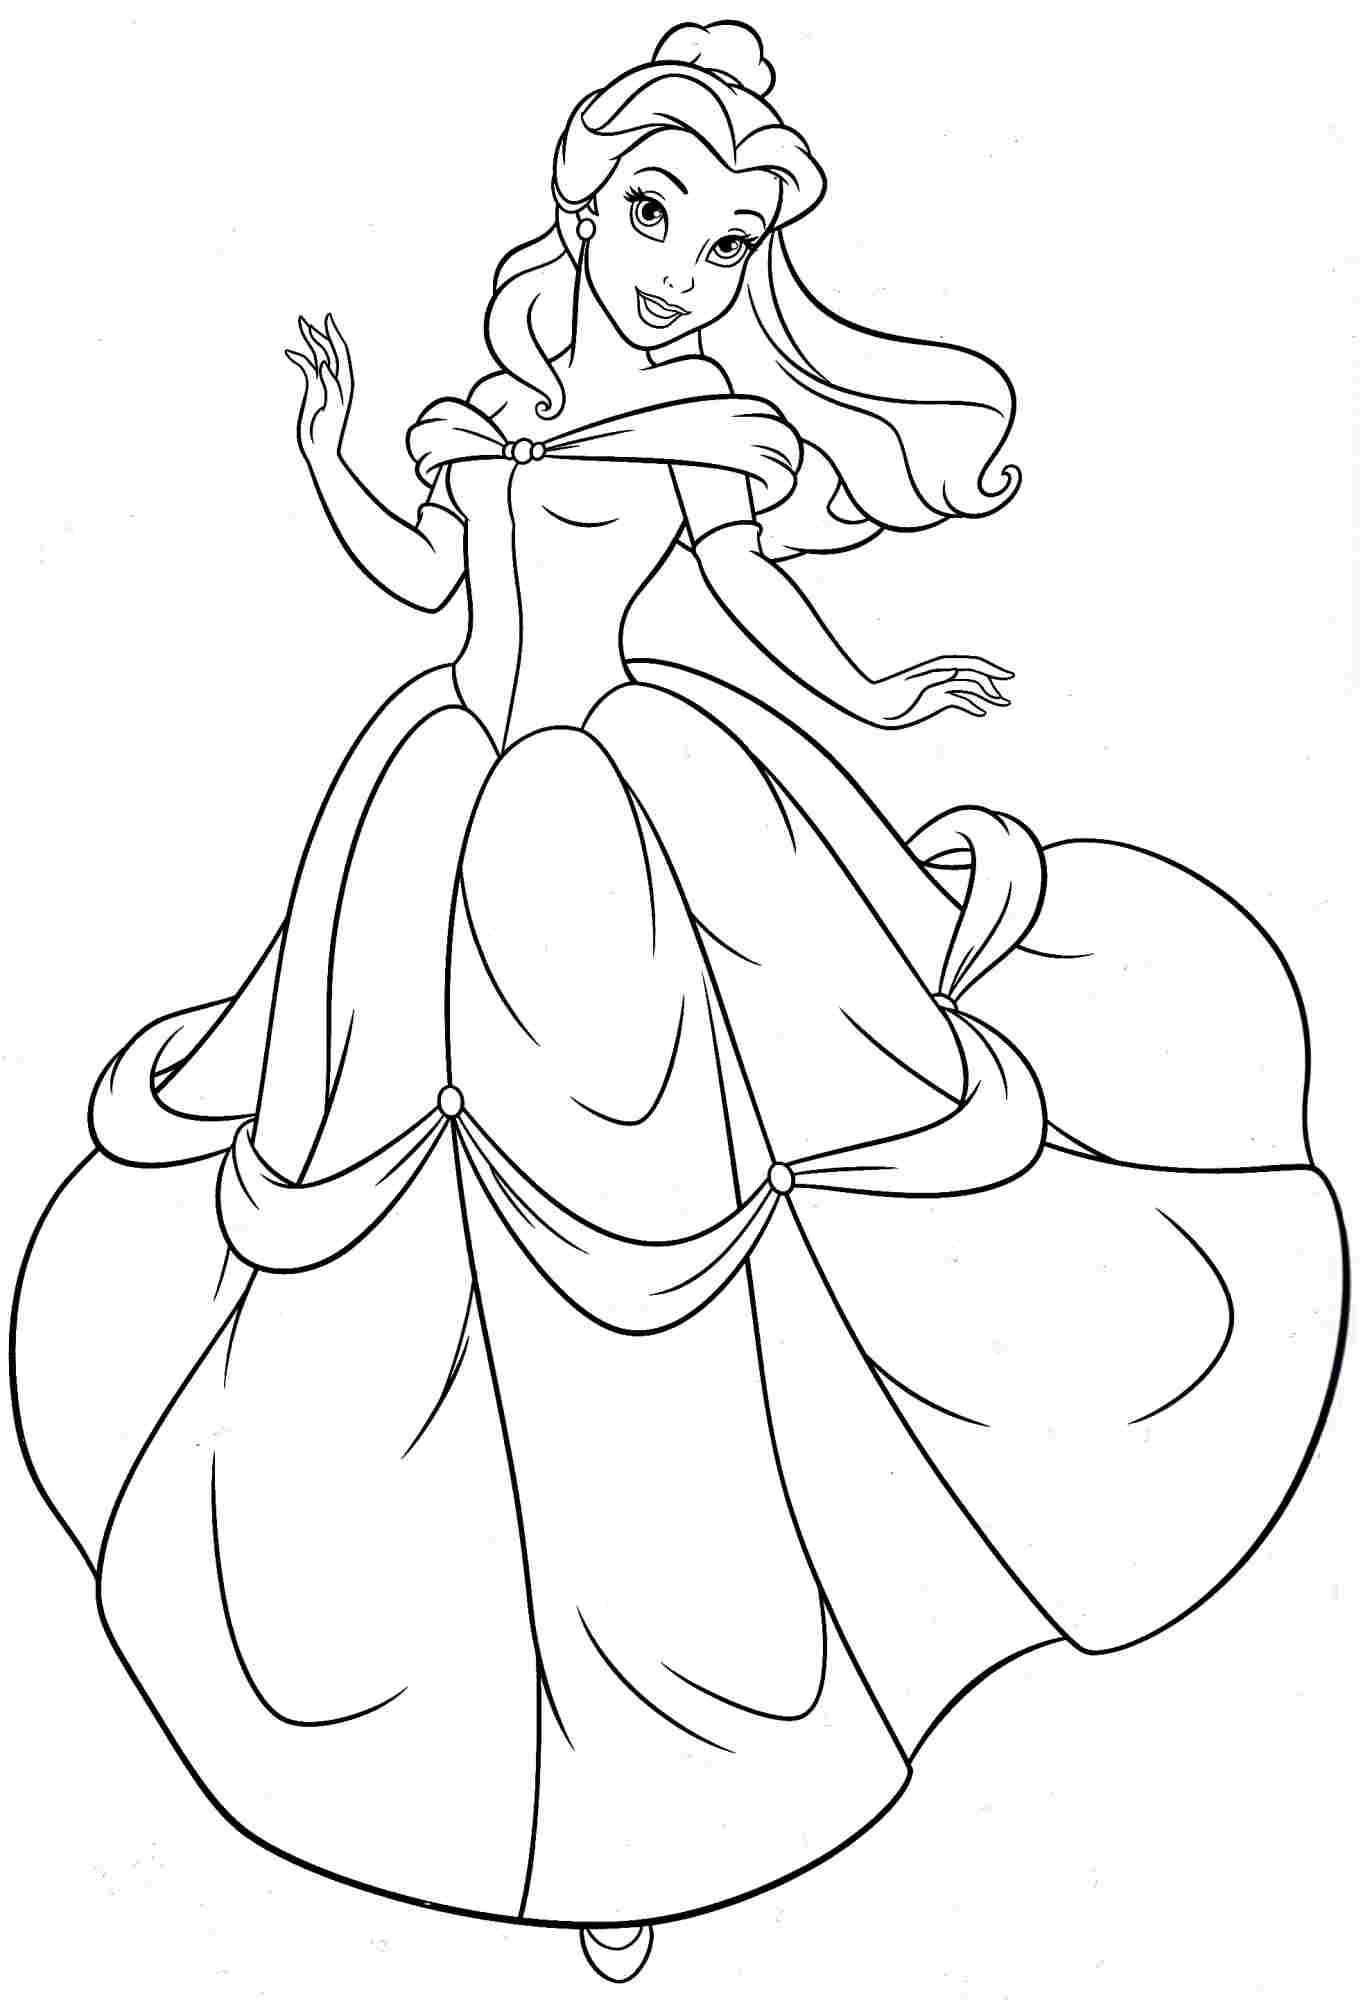 coloring pages princesses print download princess coloring pages support the princesses pages coloring